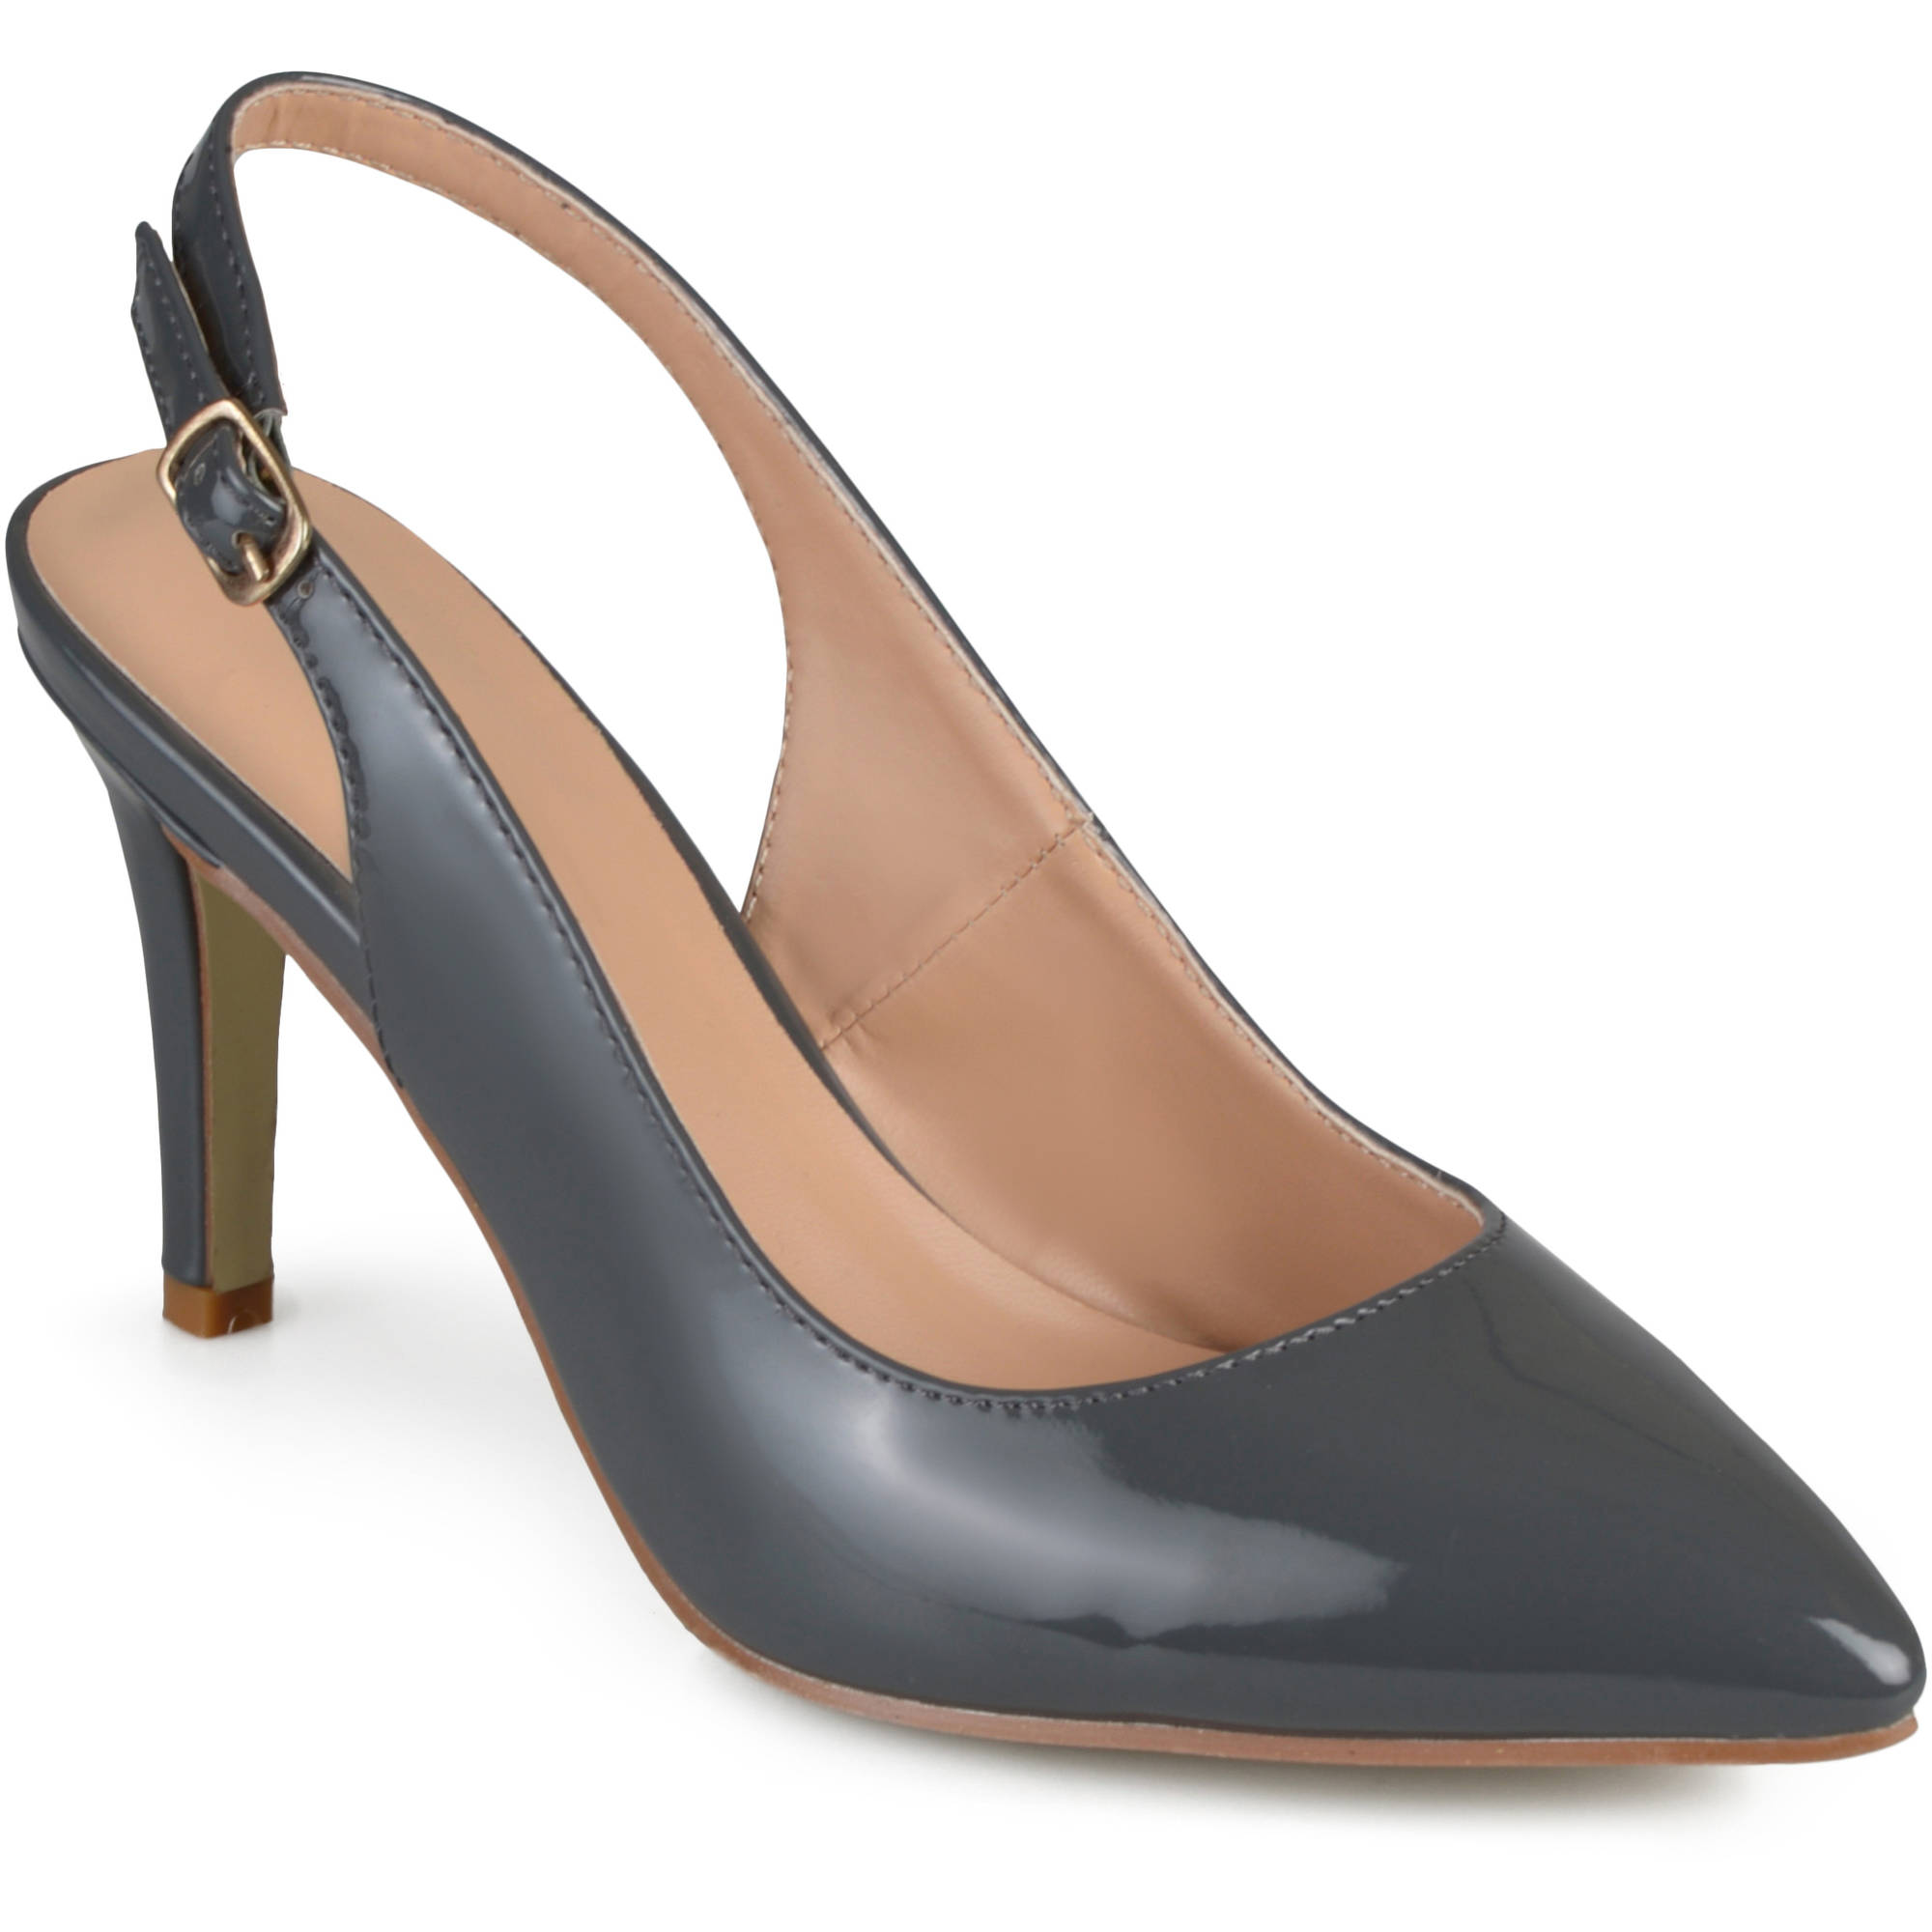 Brinley Co. Women's Slingback Almond Toe Pumps